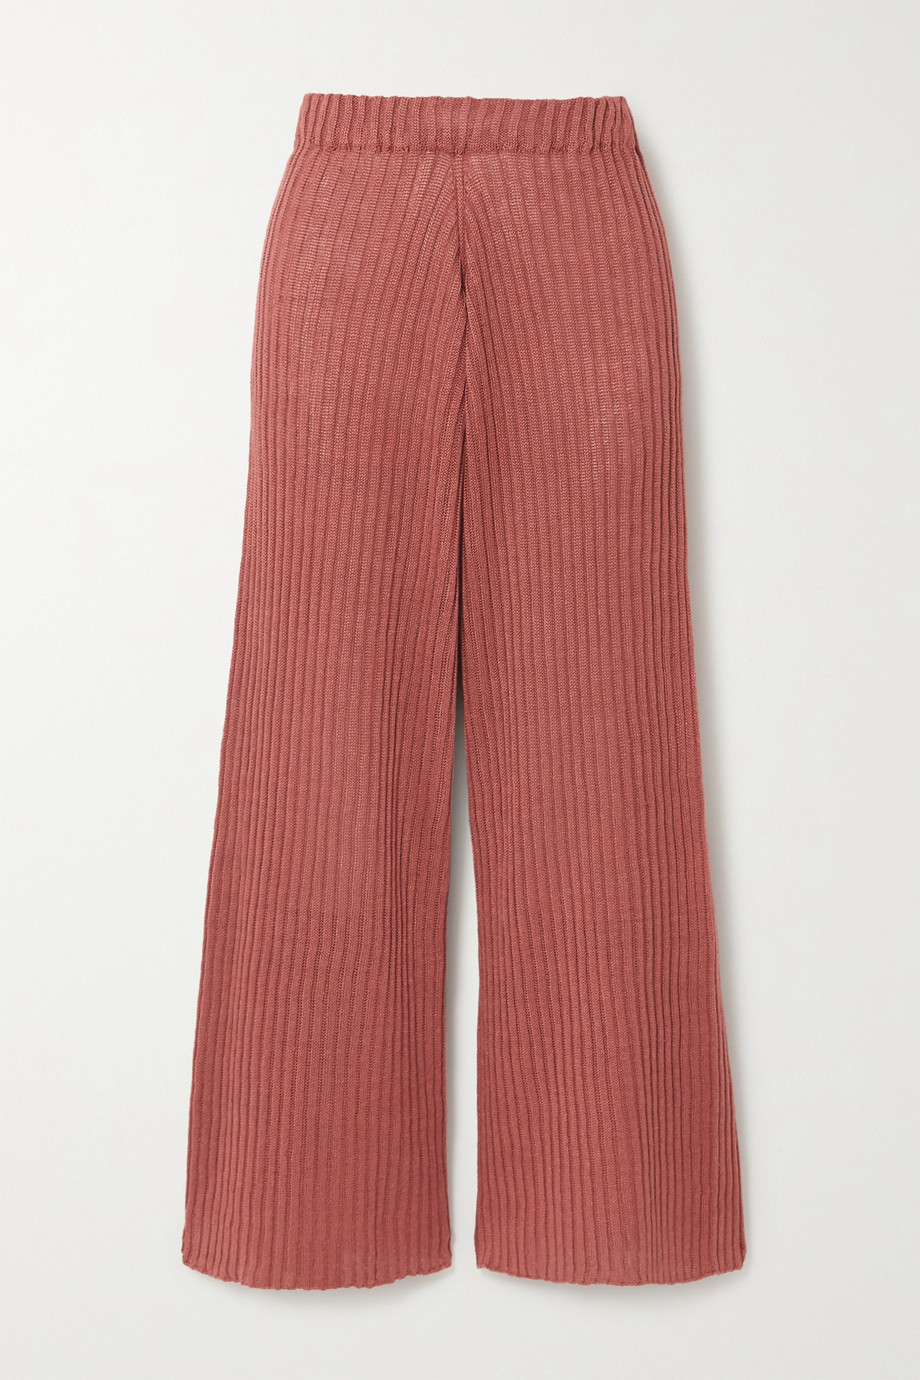 Baserange + NET SUSTAIN Loch ribbed linen wide-leg pants